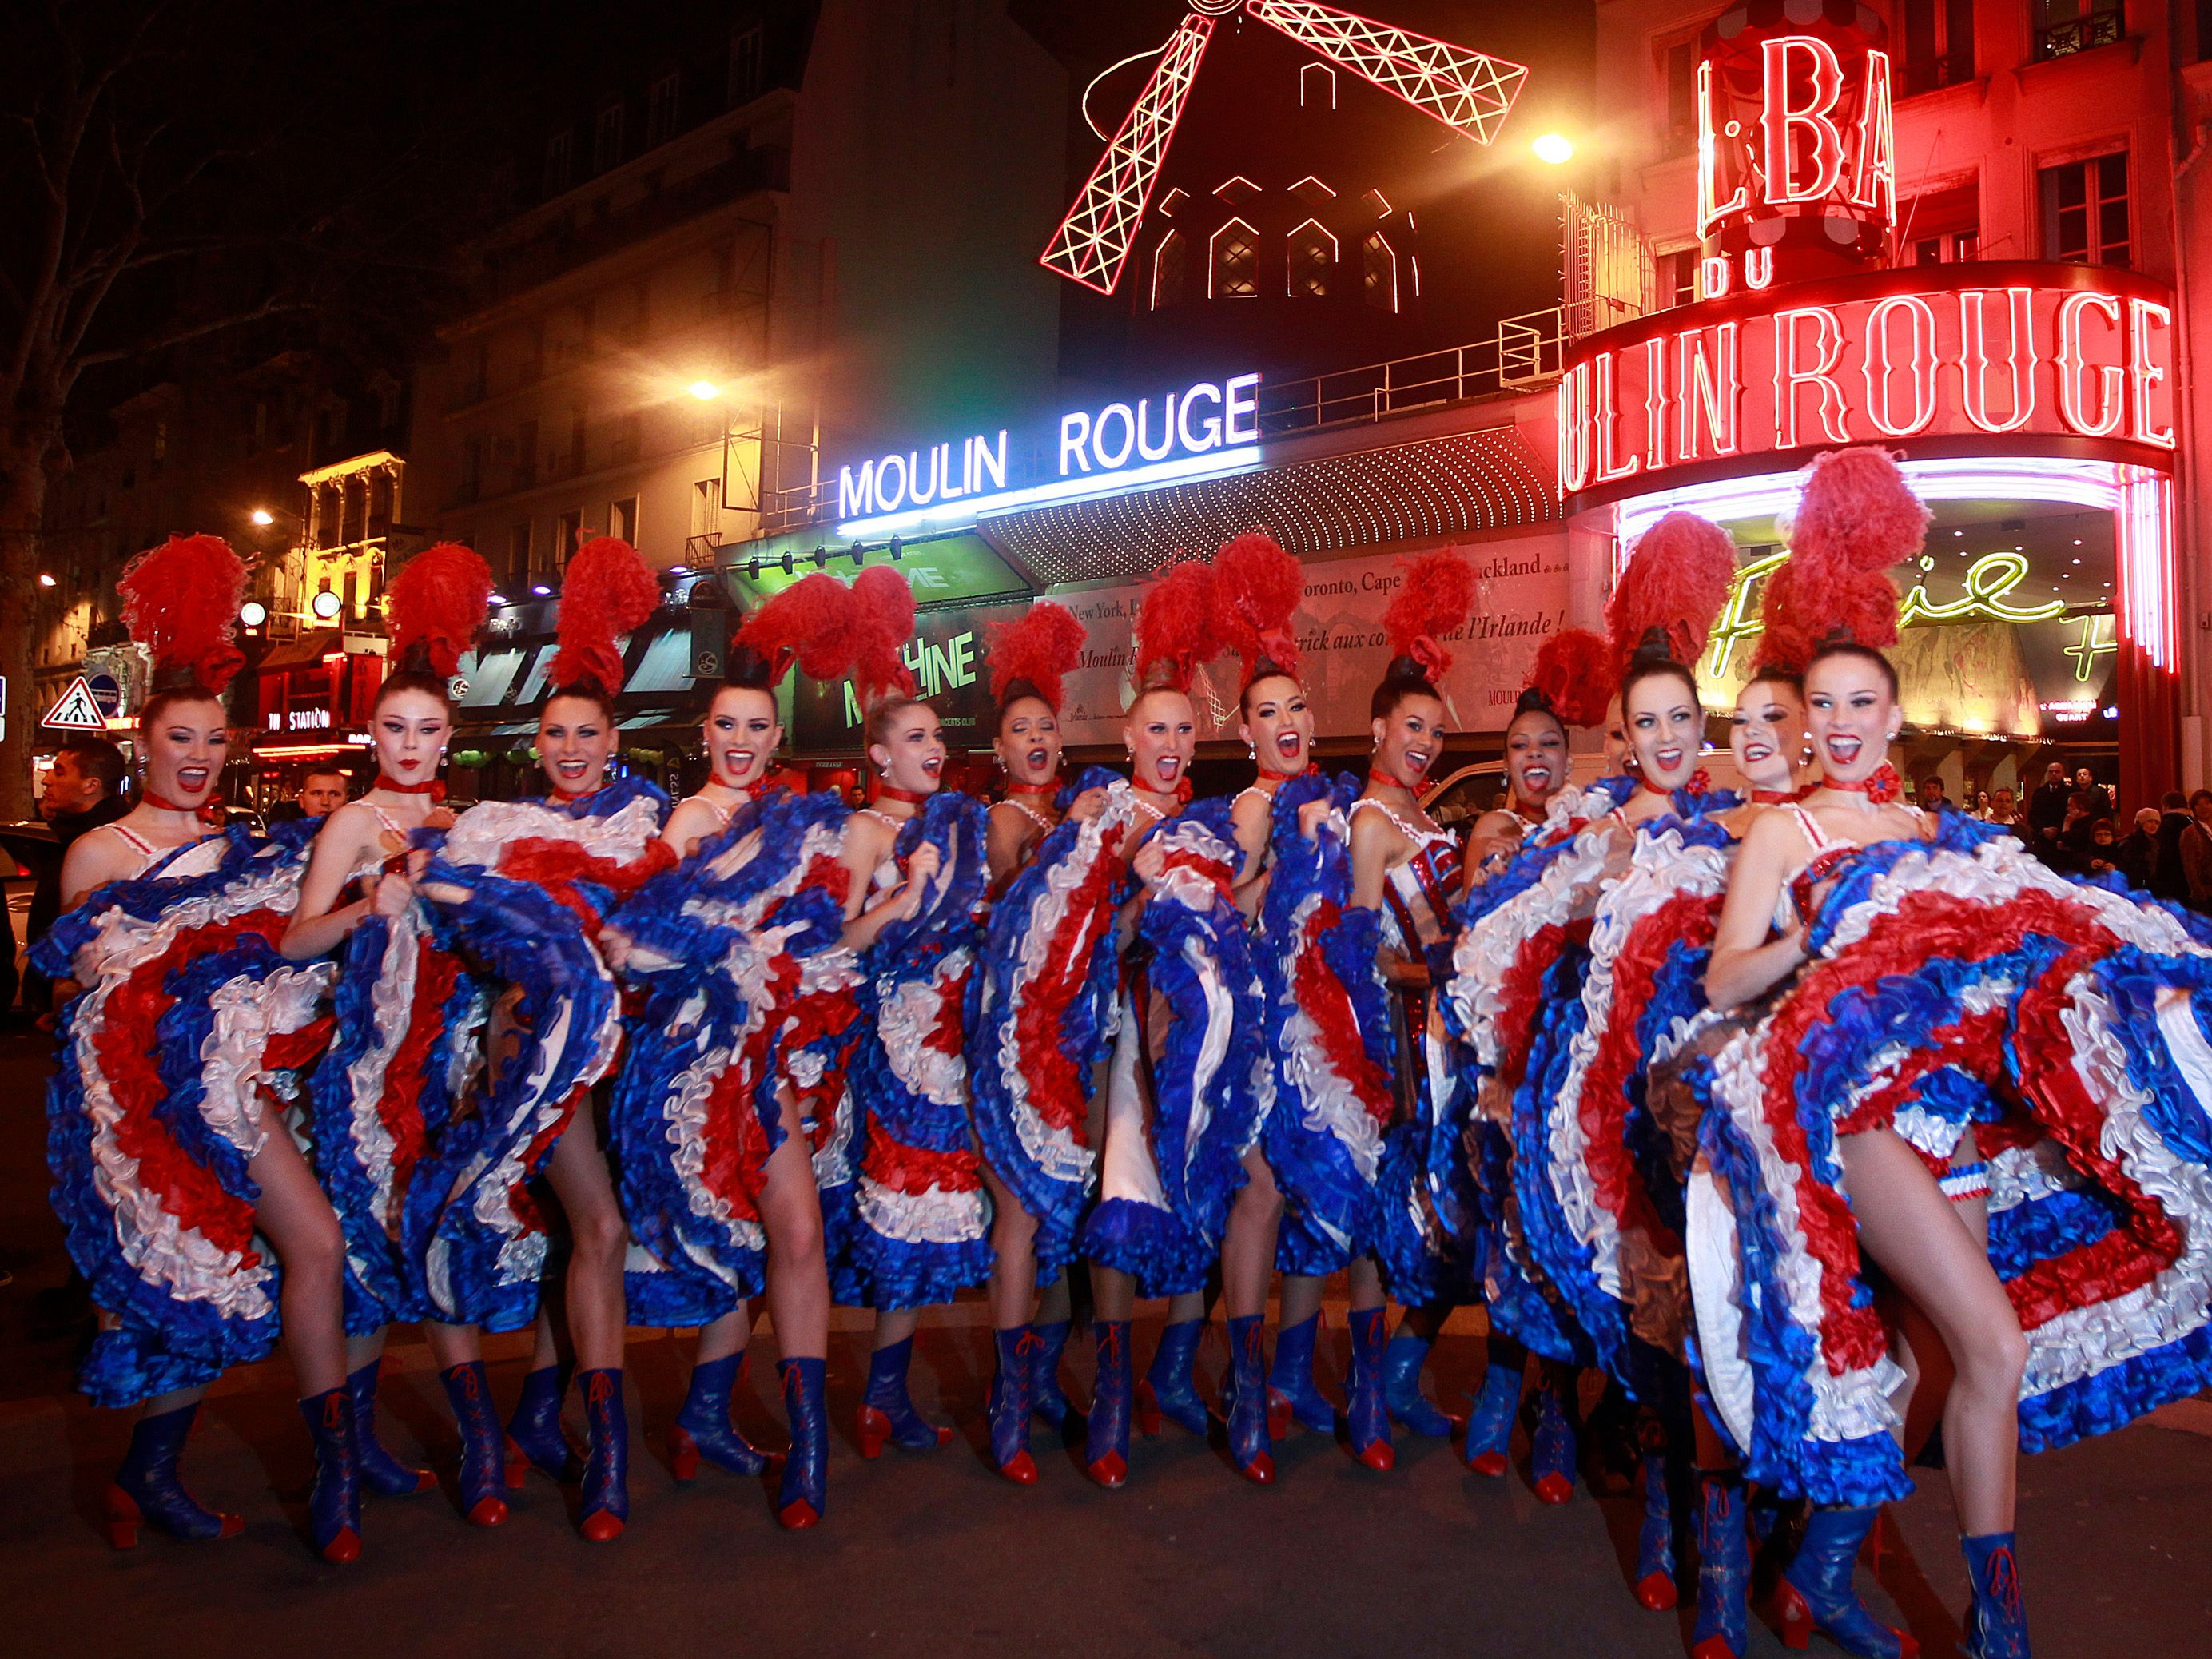 Nos artistes devant le moulin rouge en costume tricolore for French shows